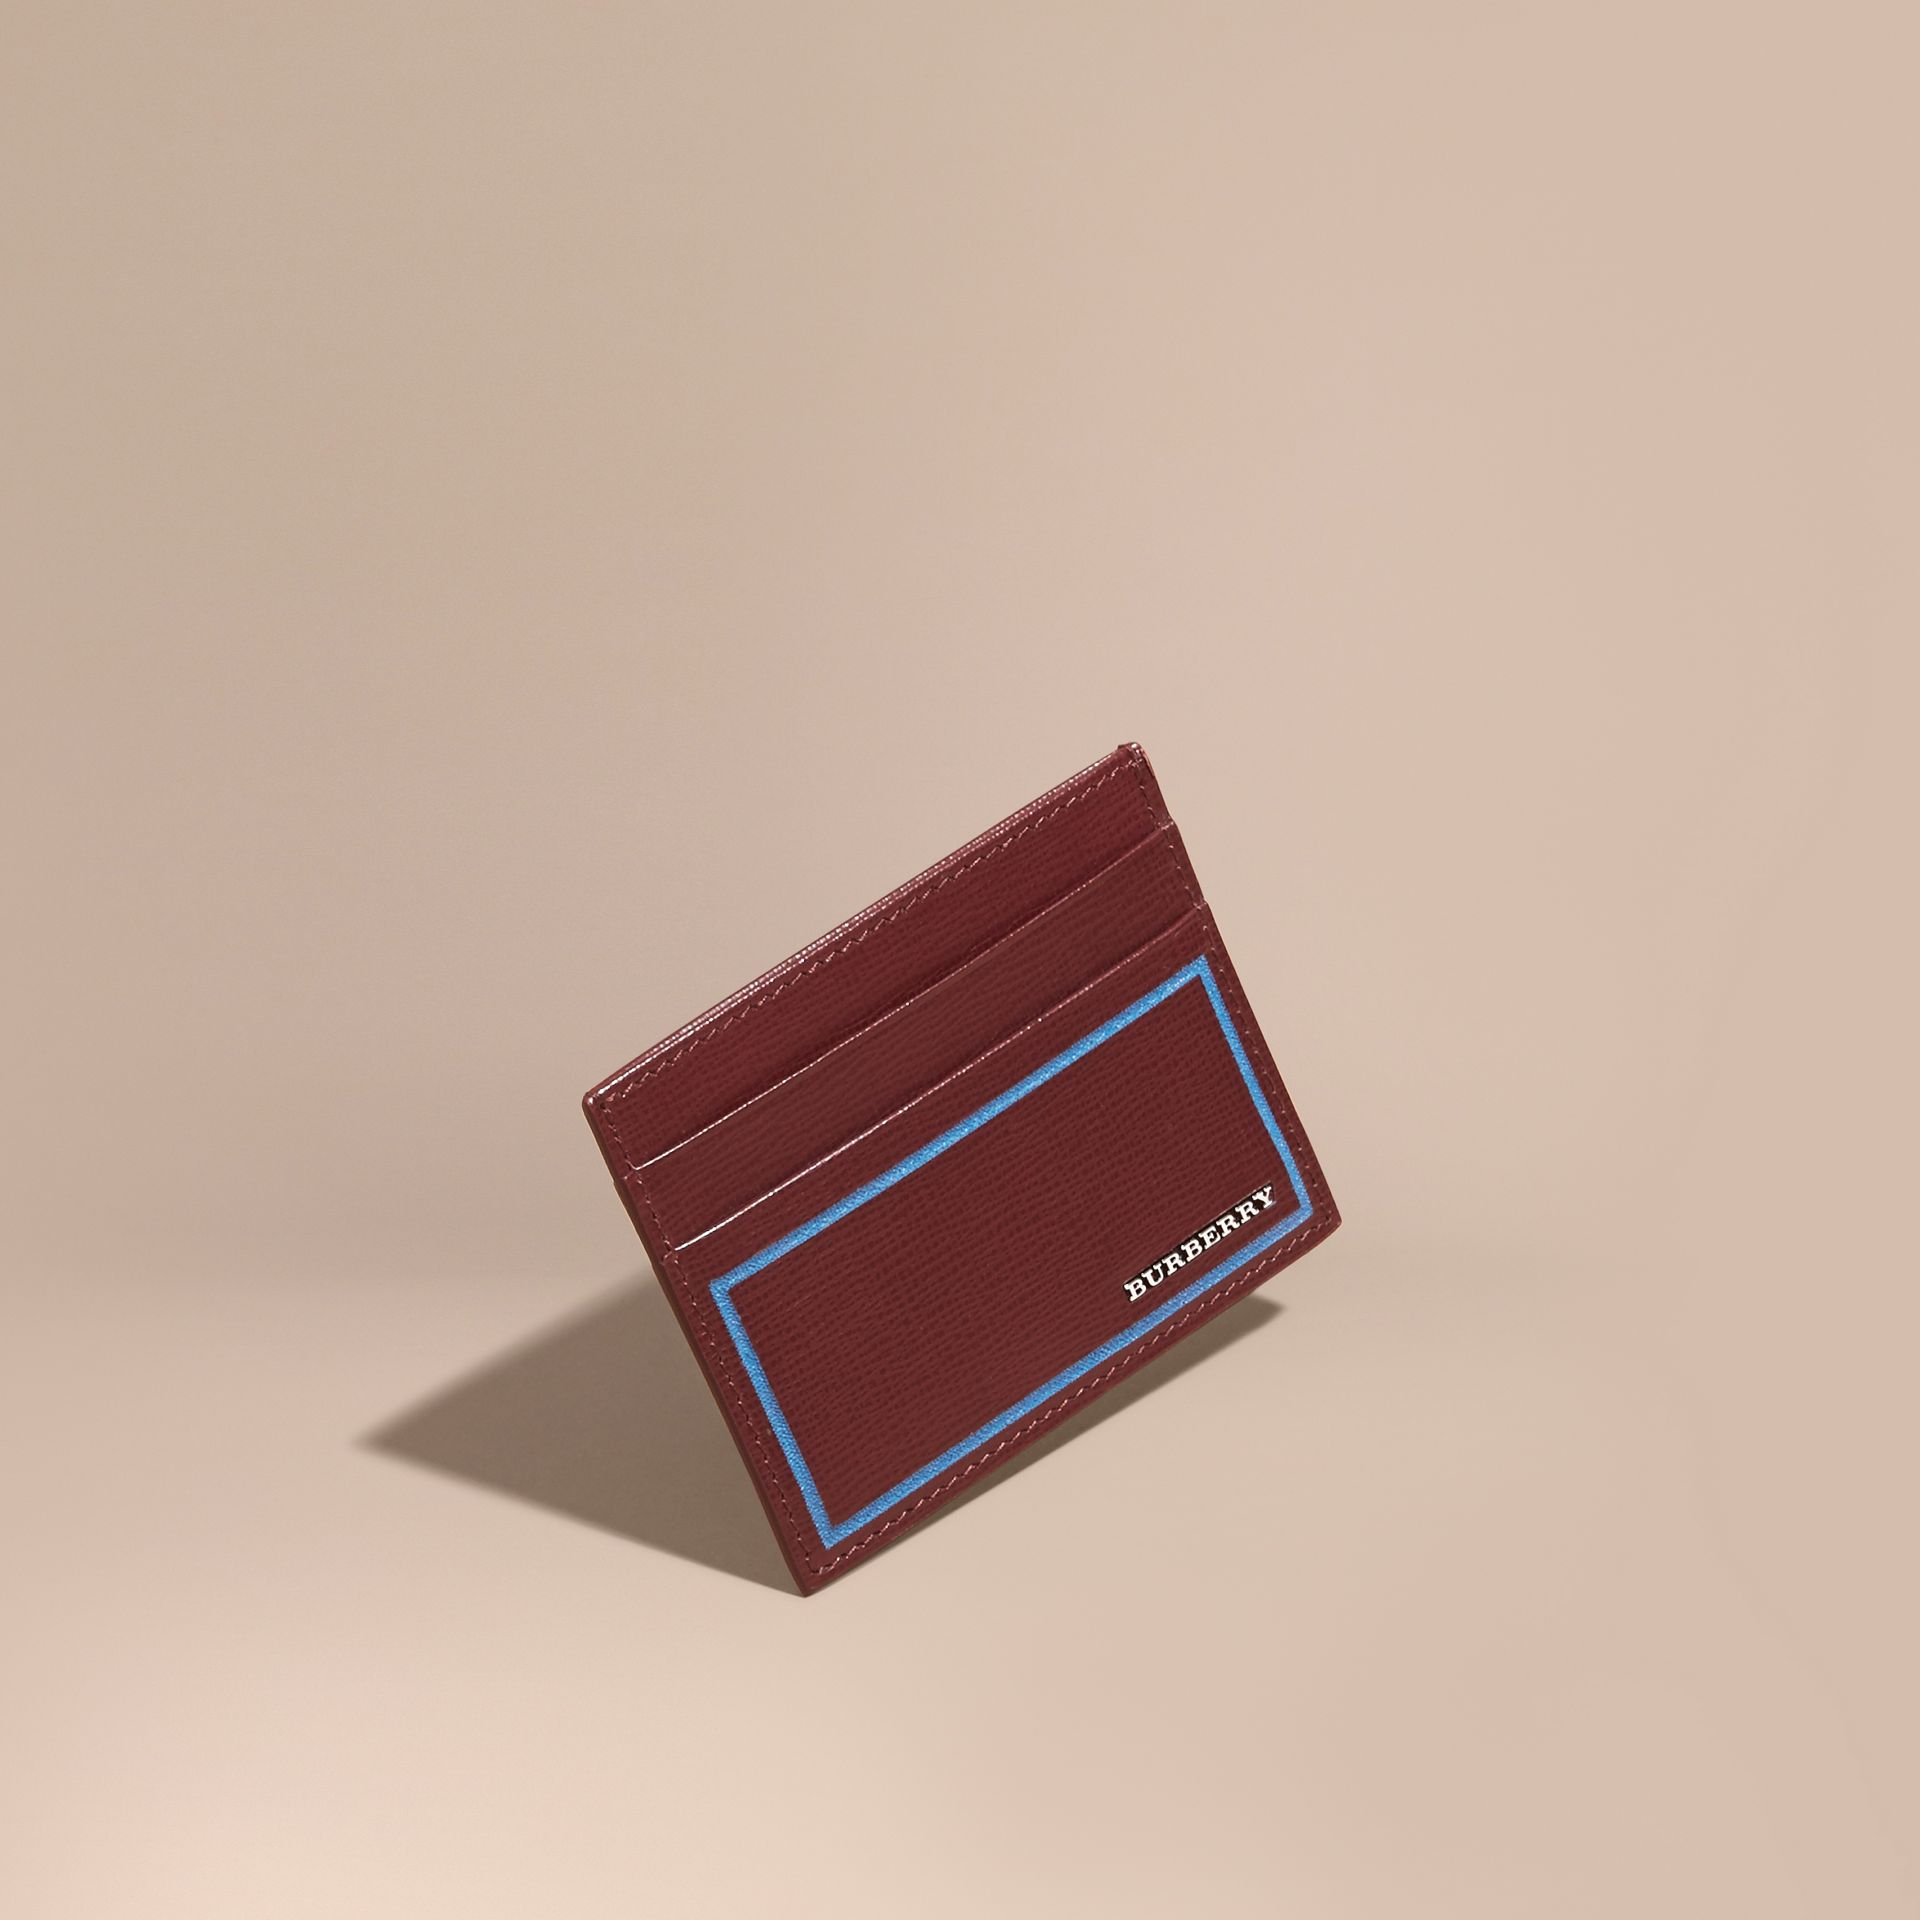 Border Detail London Leather Card Case Burgundy Red - gallery image 1